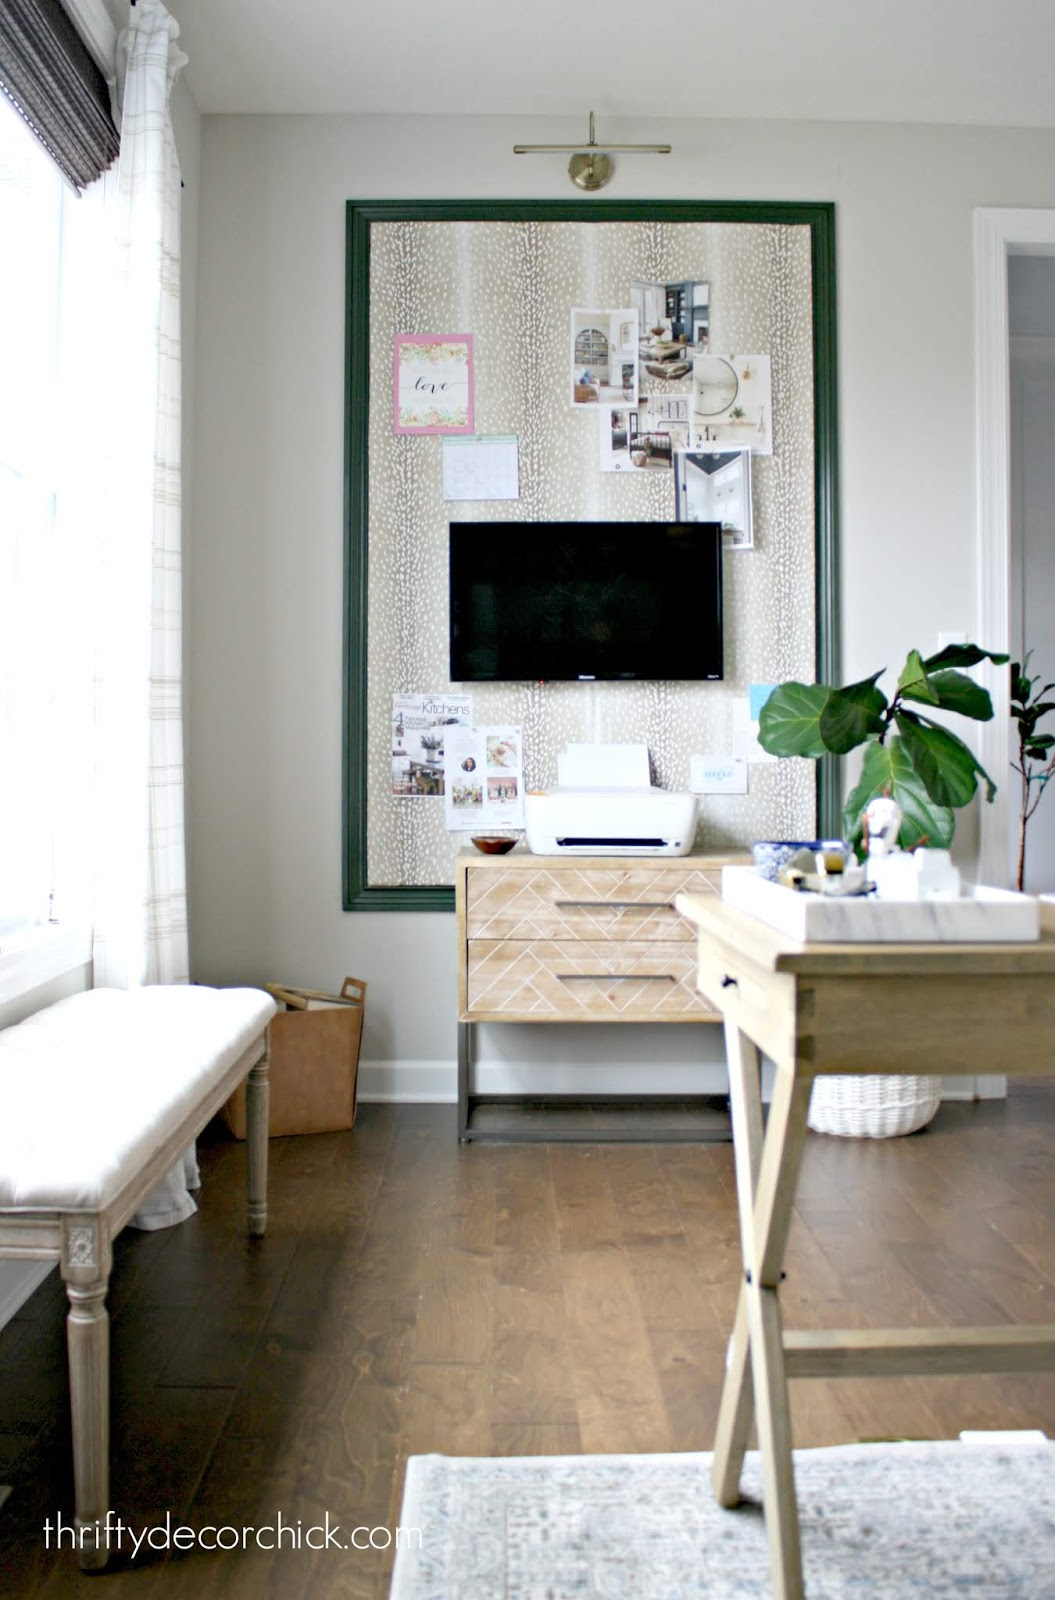 Large DIY upholstered bulletin board